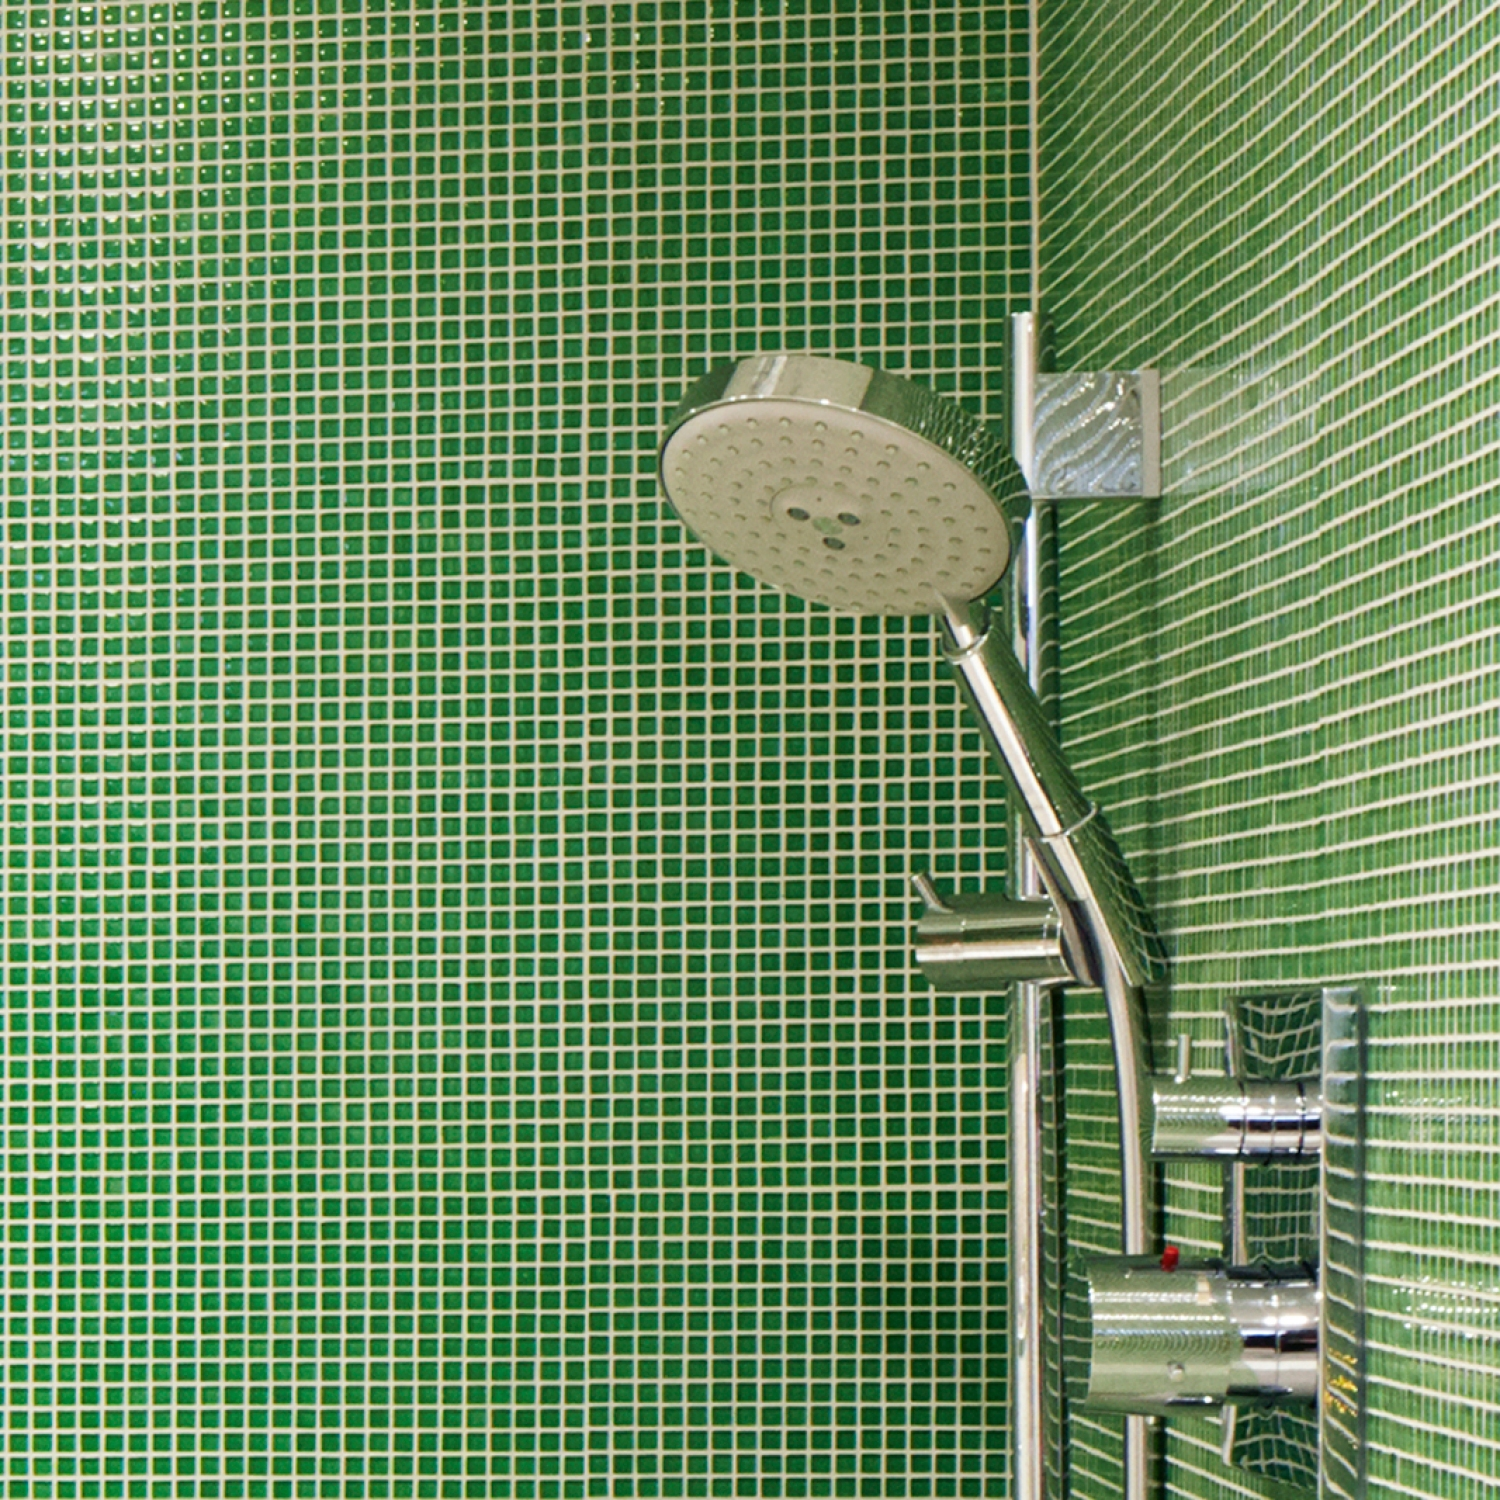 Tub to Shower Conversion | Tub to Shower Conversion Cost Handicap Shower Kits Mobile Home on home depot handicap shower, mobile homes with garages, modular home disabled shower, mobile home shower pan, mobile home shower tile, mobile home shower stalls, industrial handicap shower, handicap shower rails for outside the shower,